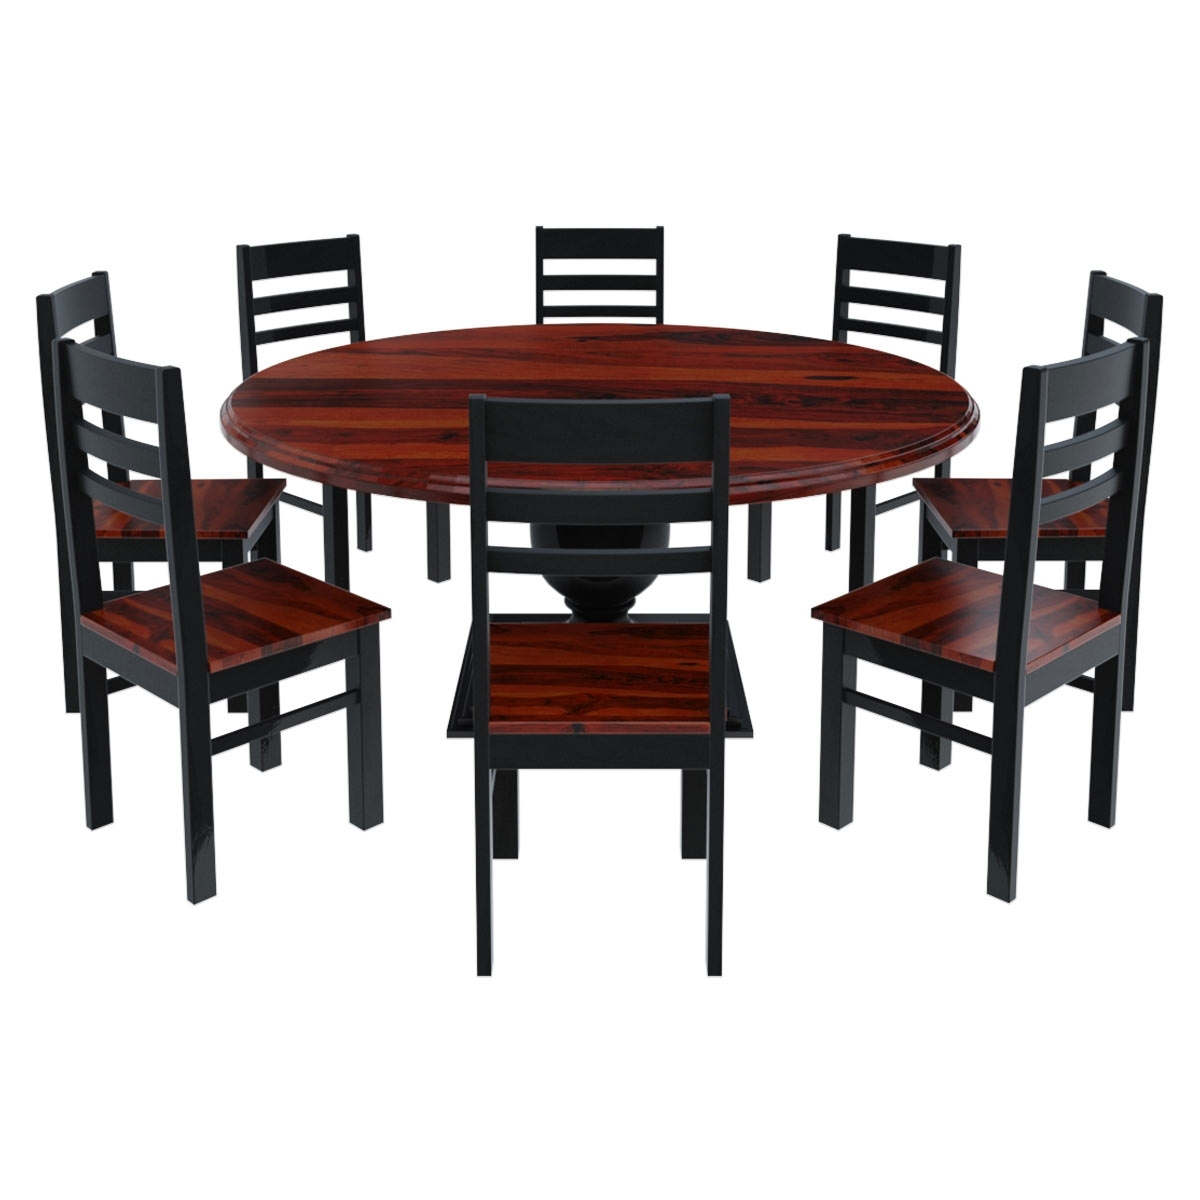 Dining Tables 8 Chairs Set For Most Recently Released Illinois Modern Two Tone Large Round Dining Table With 8 Chairs Set (View 5 of 25)